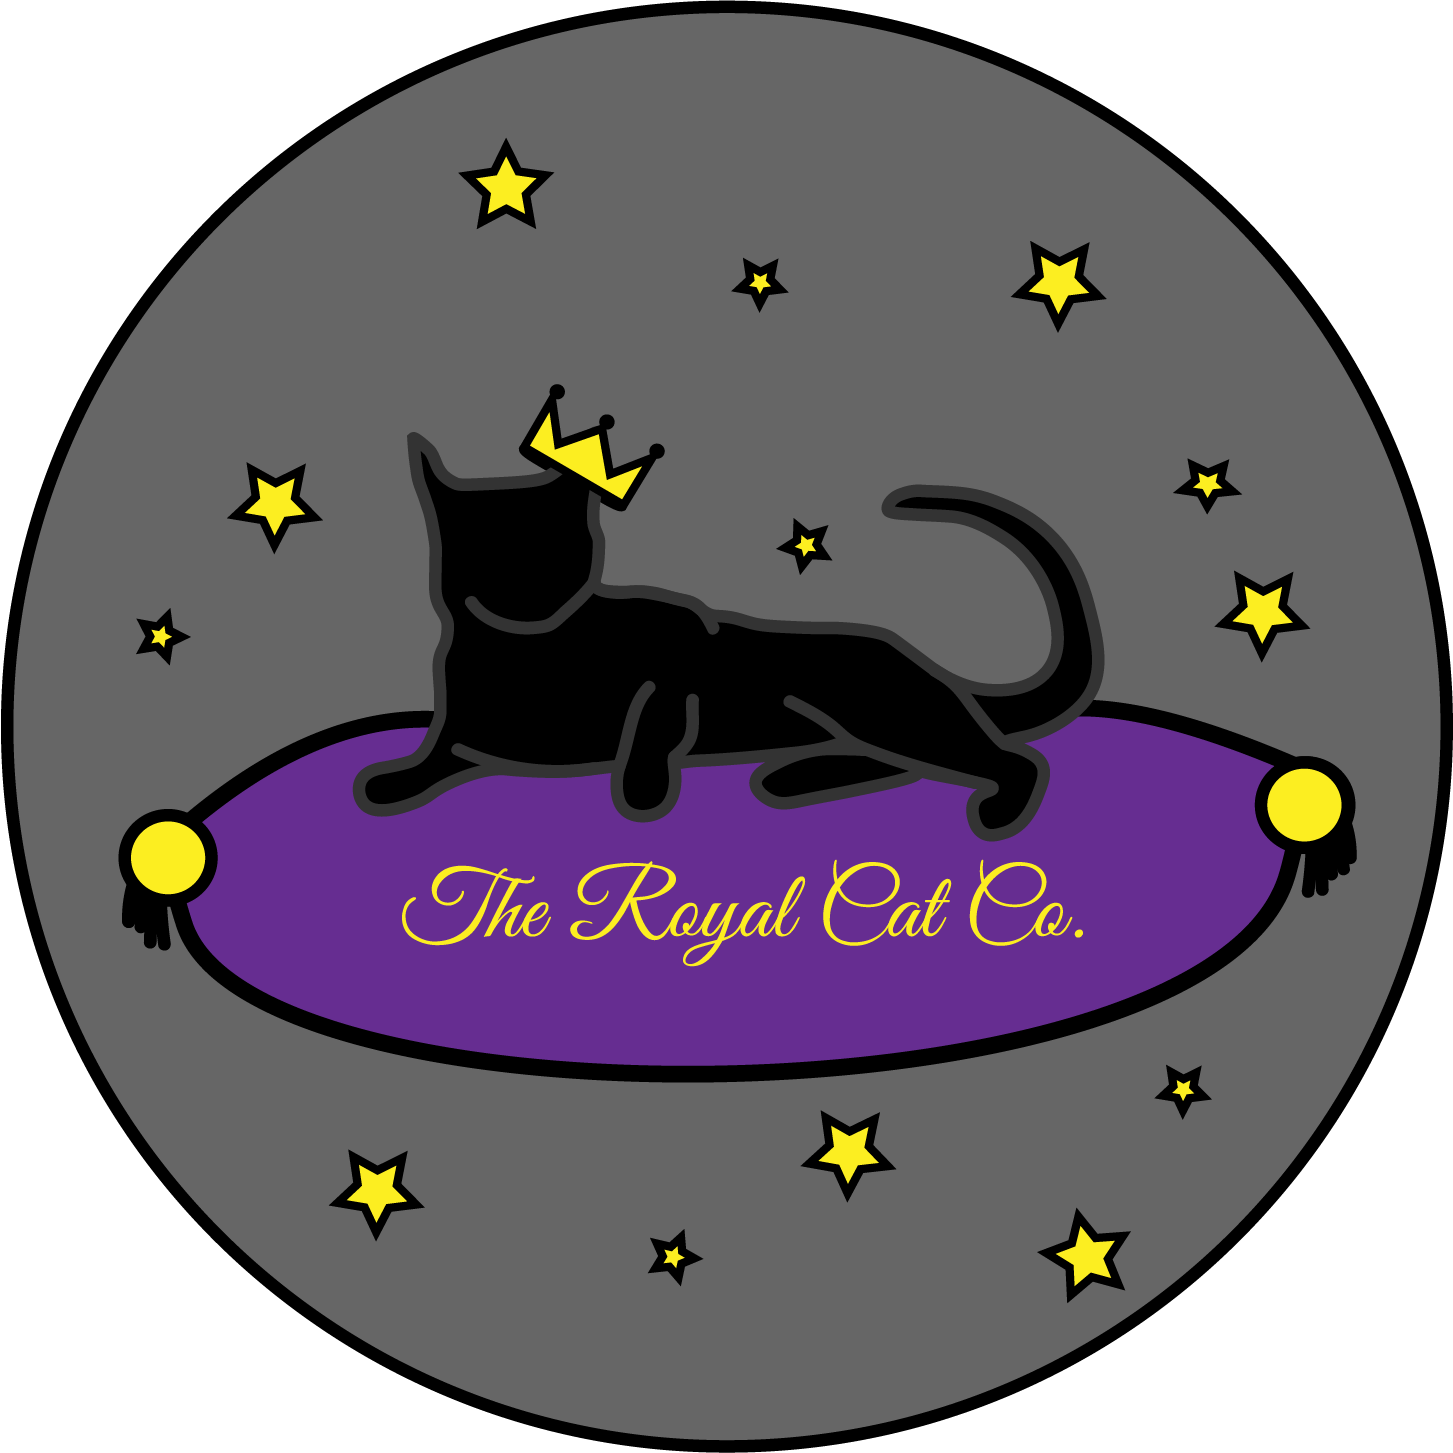 The Royal Cat Co.